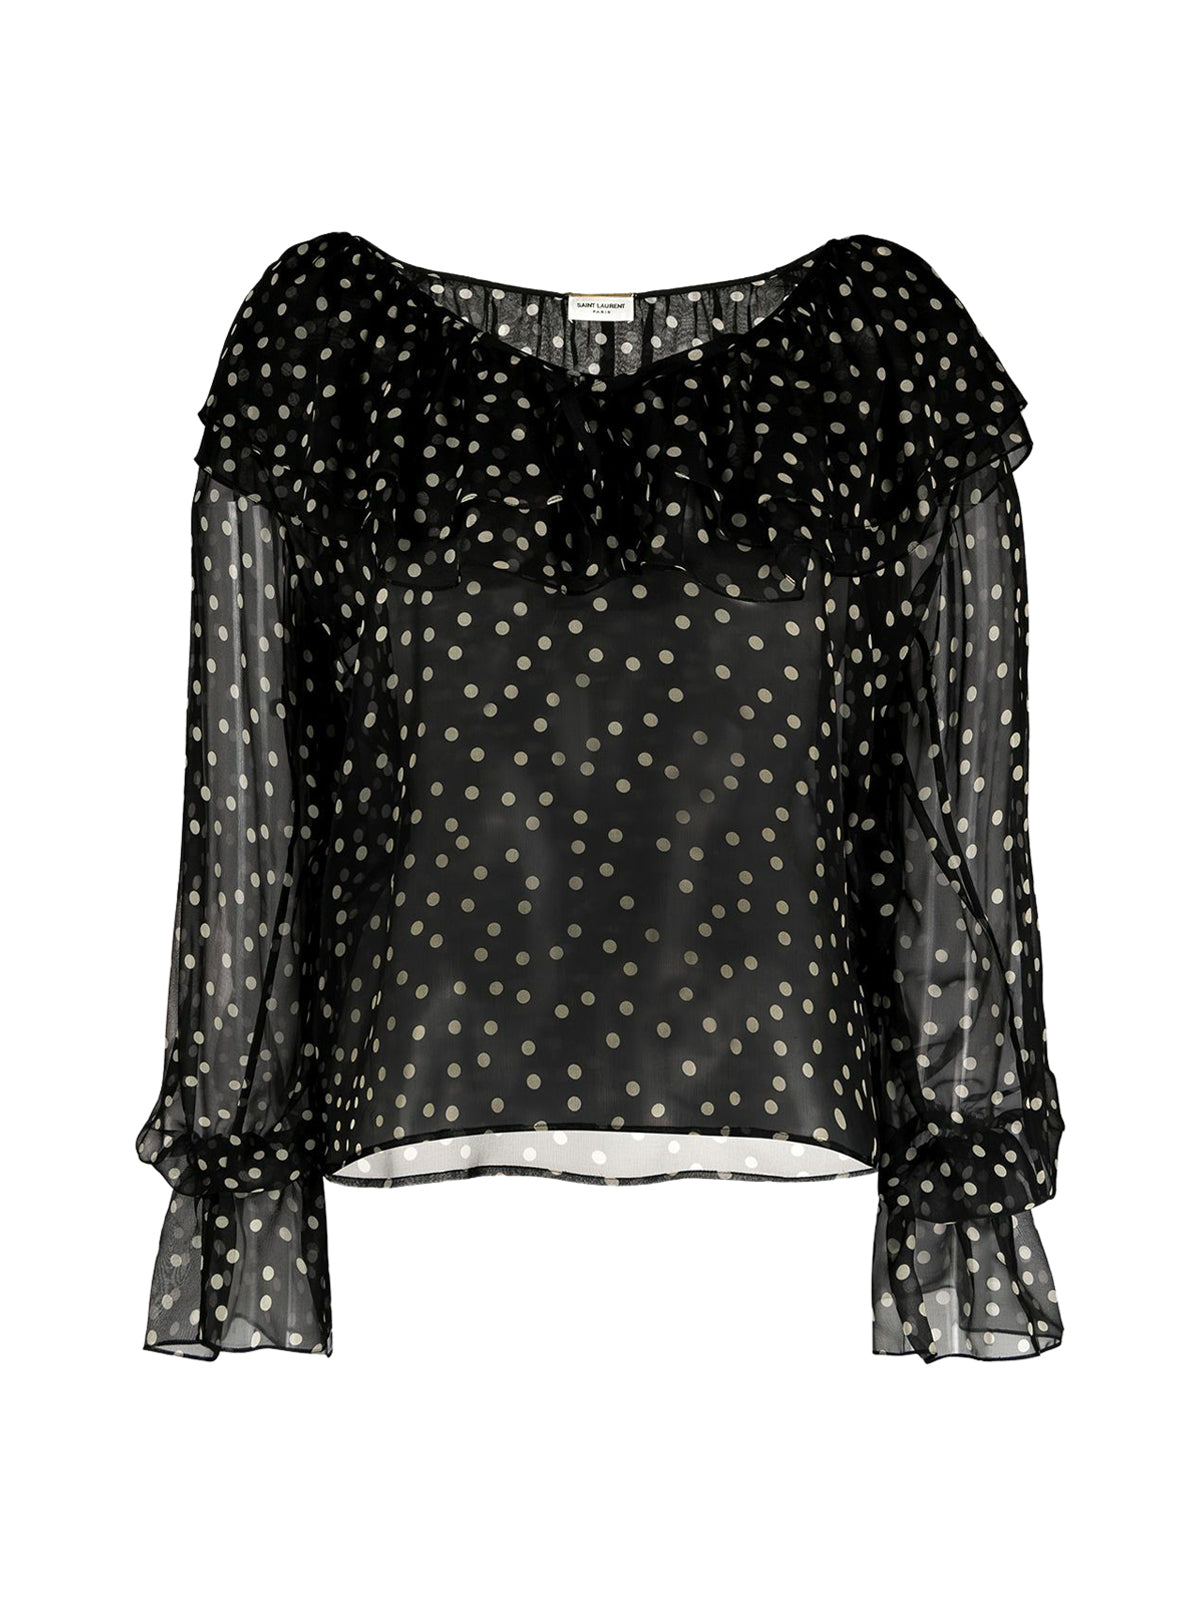 POLKA DOT SILK SHIRT WITH RUFFLE DETAIL